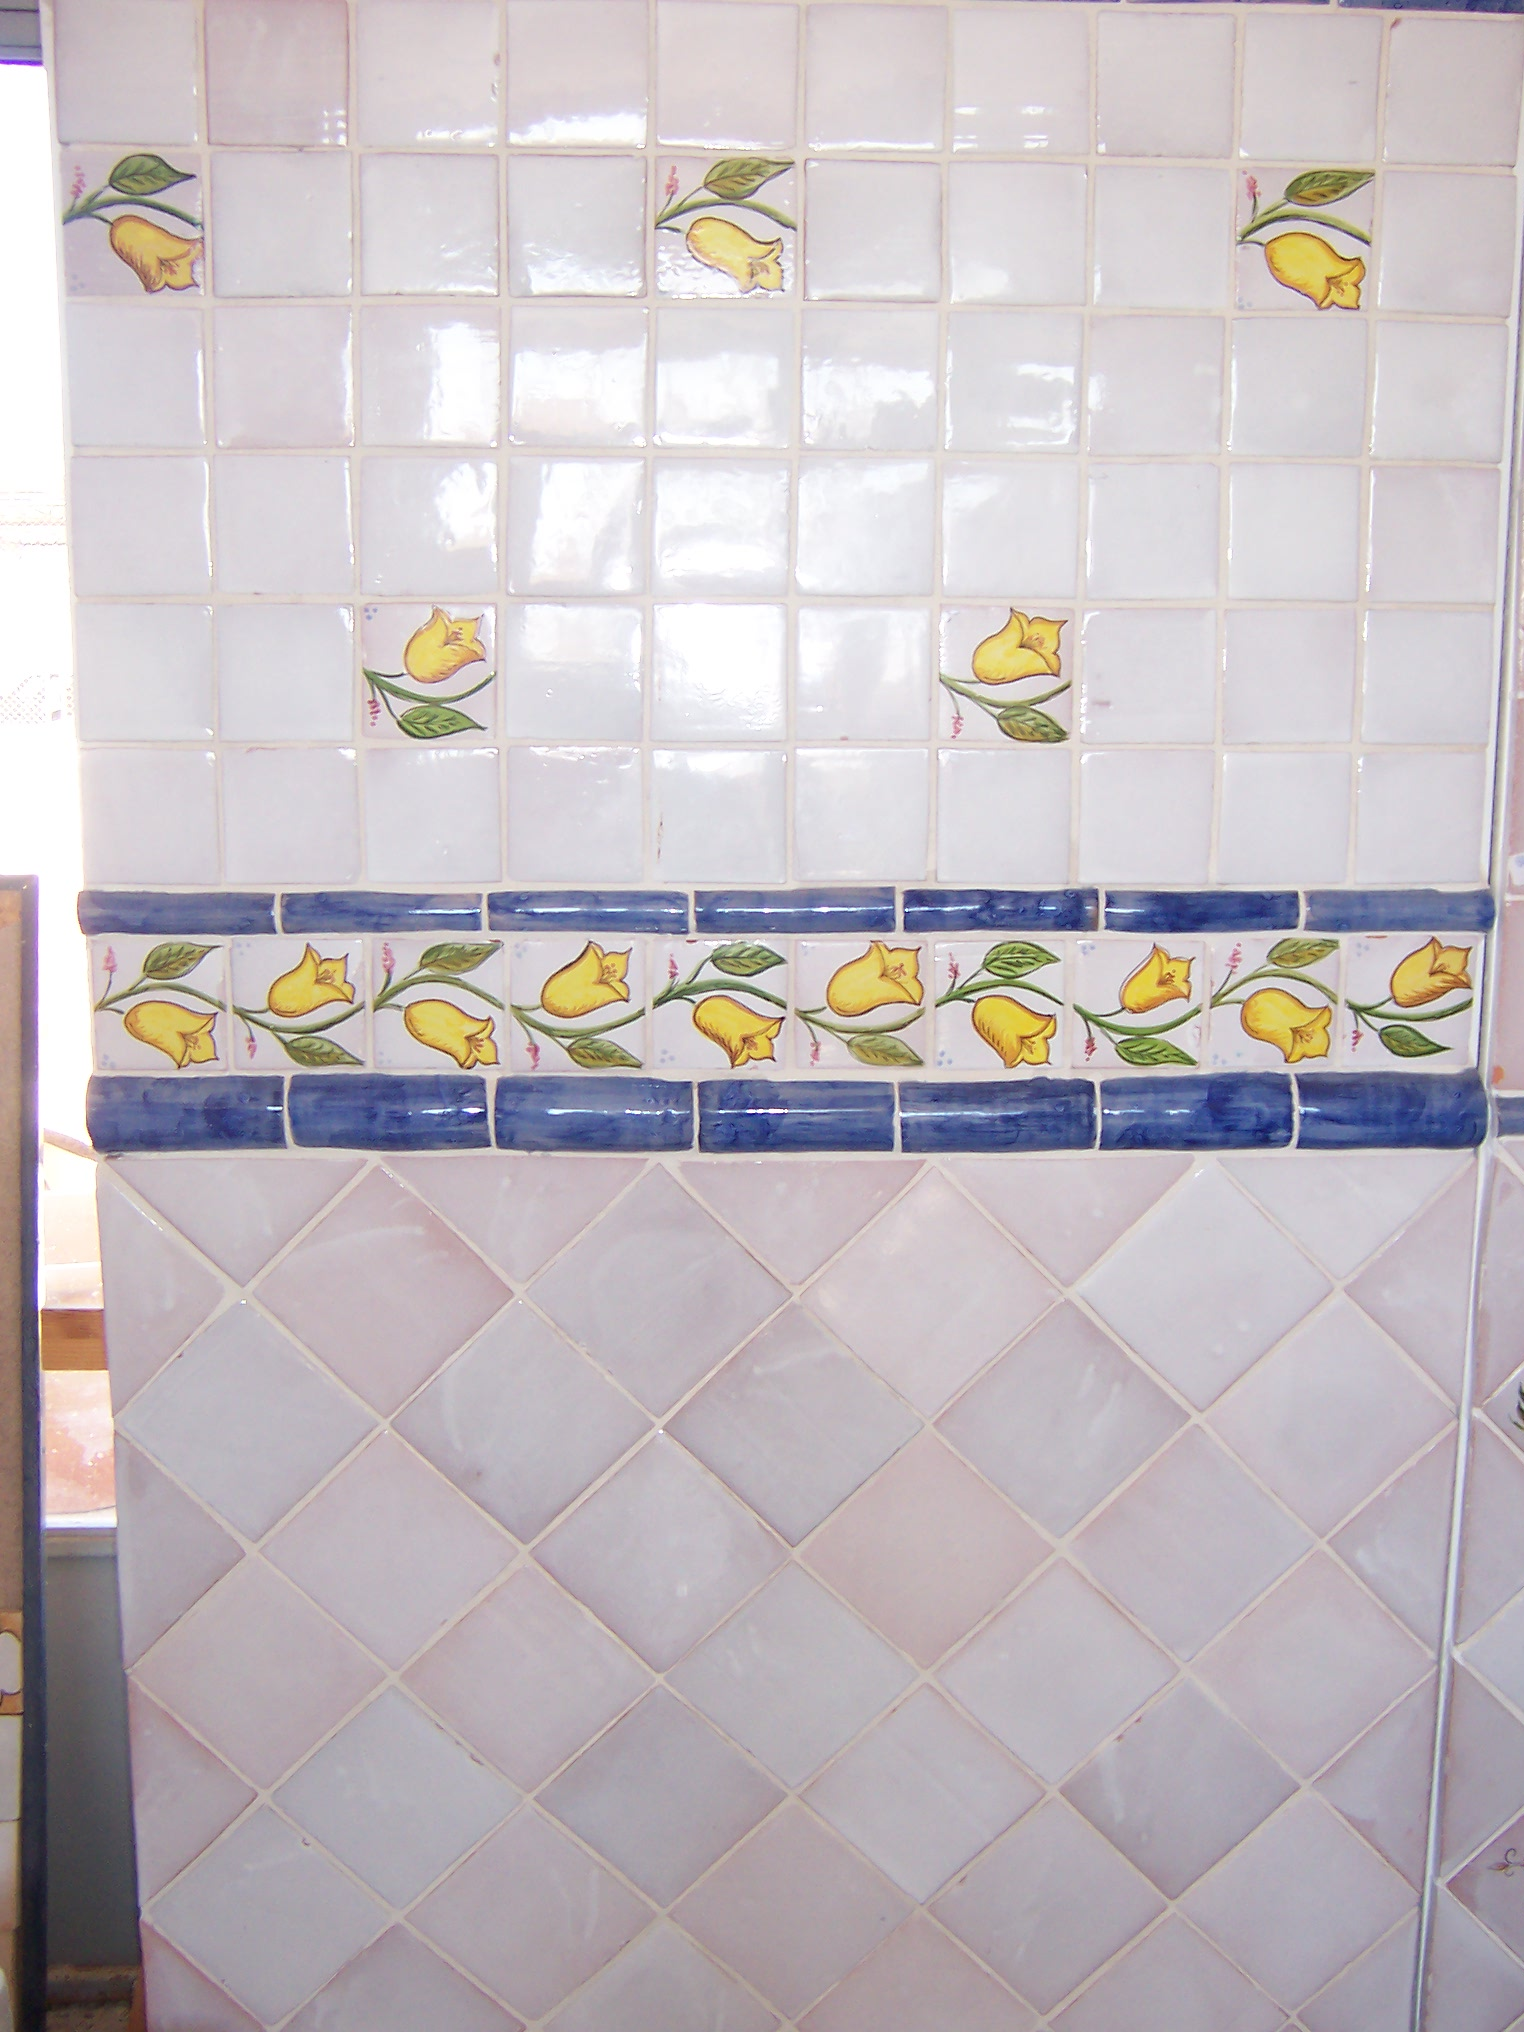 TILES HAND-MADE OF THE SOUTH OF SPAIN, CERAMIC DECORATIVE AND POTTERY